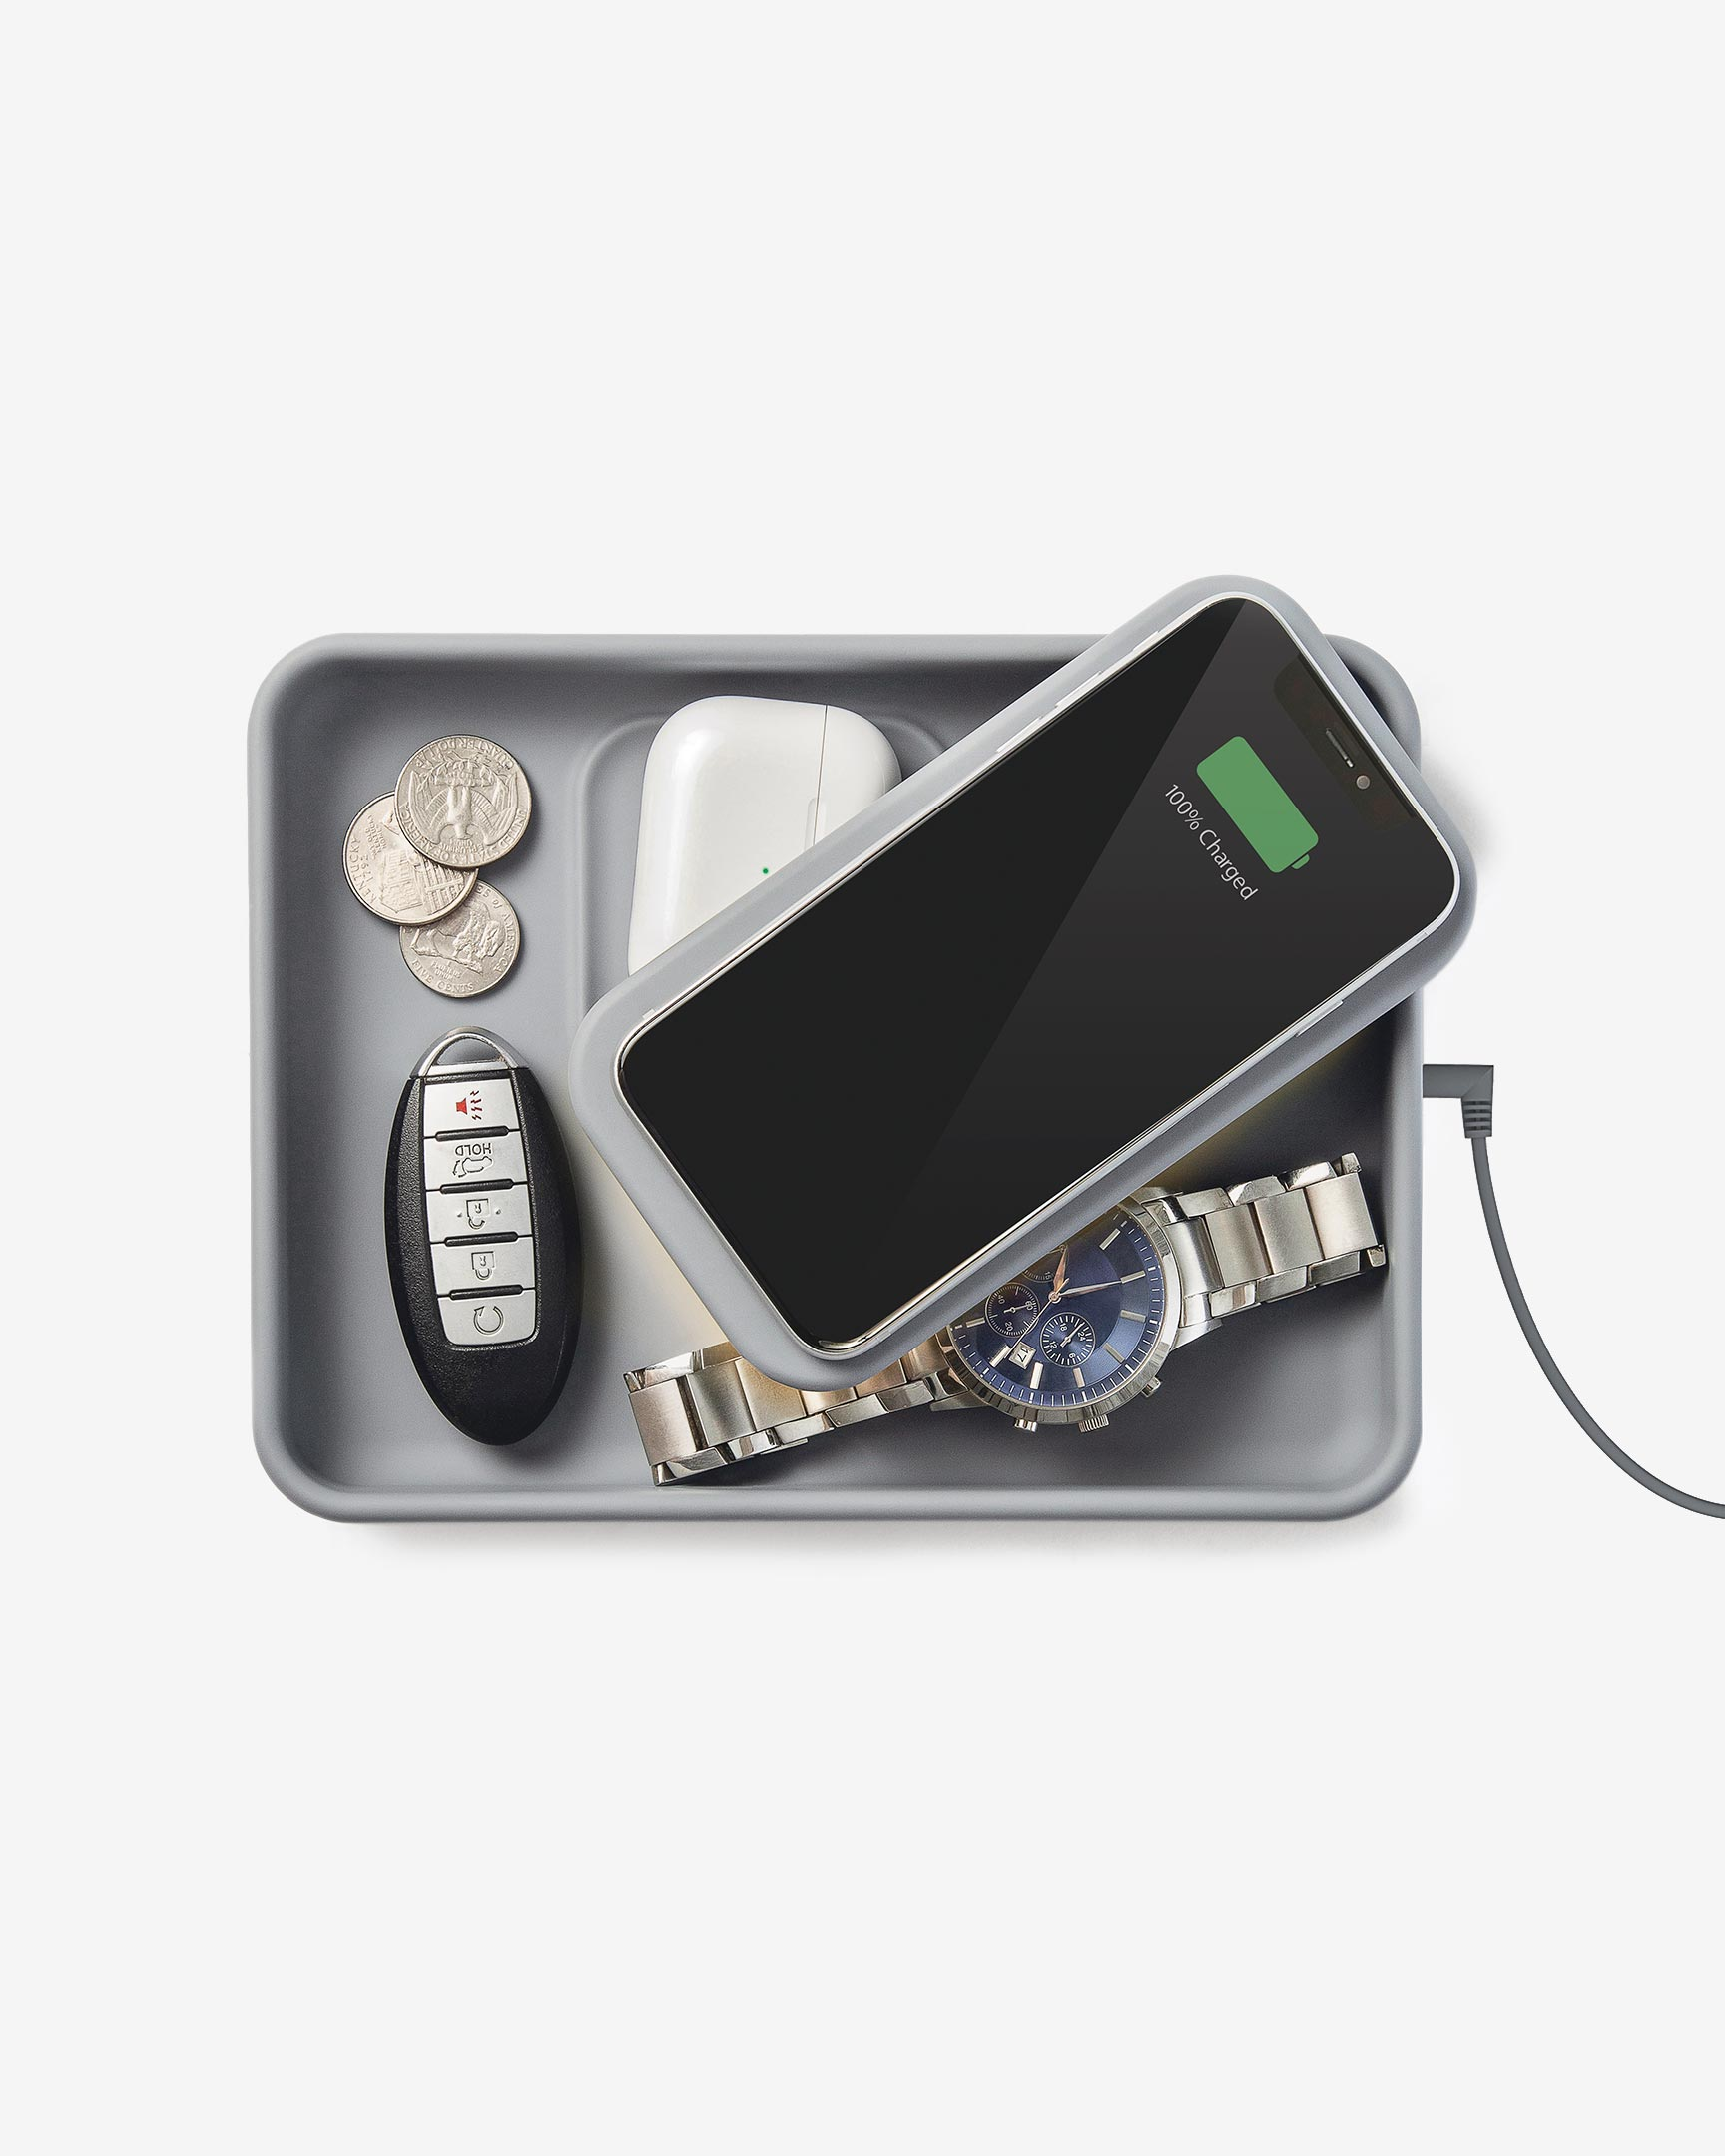 A phone and airpods are charging on top of the Tray Pivot. Key, coins, and a watch are inside the Tray Pivot